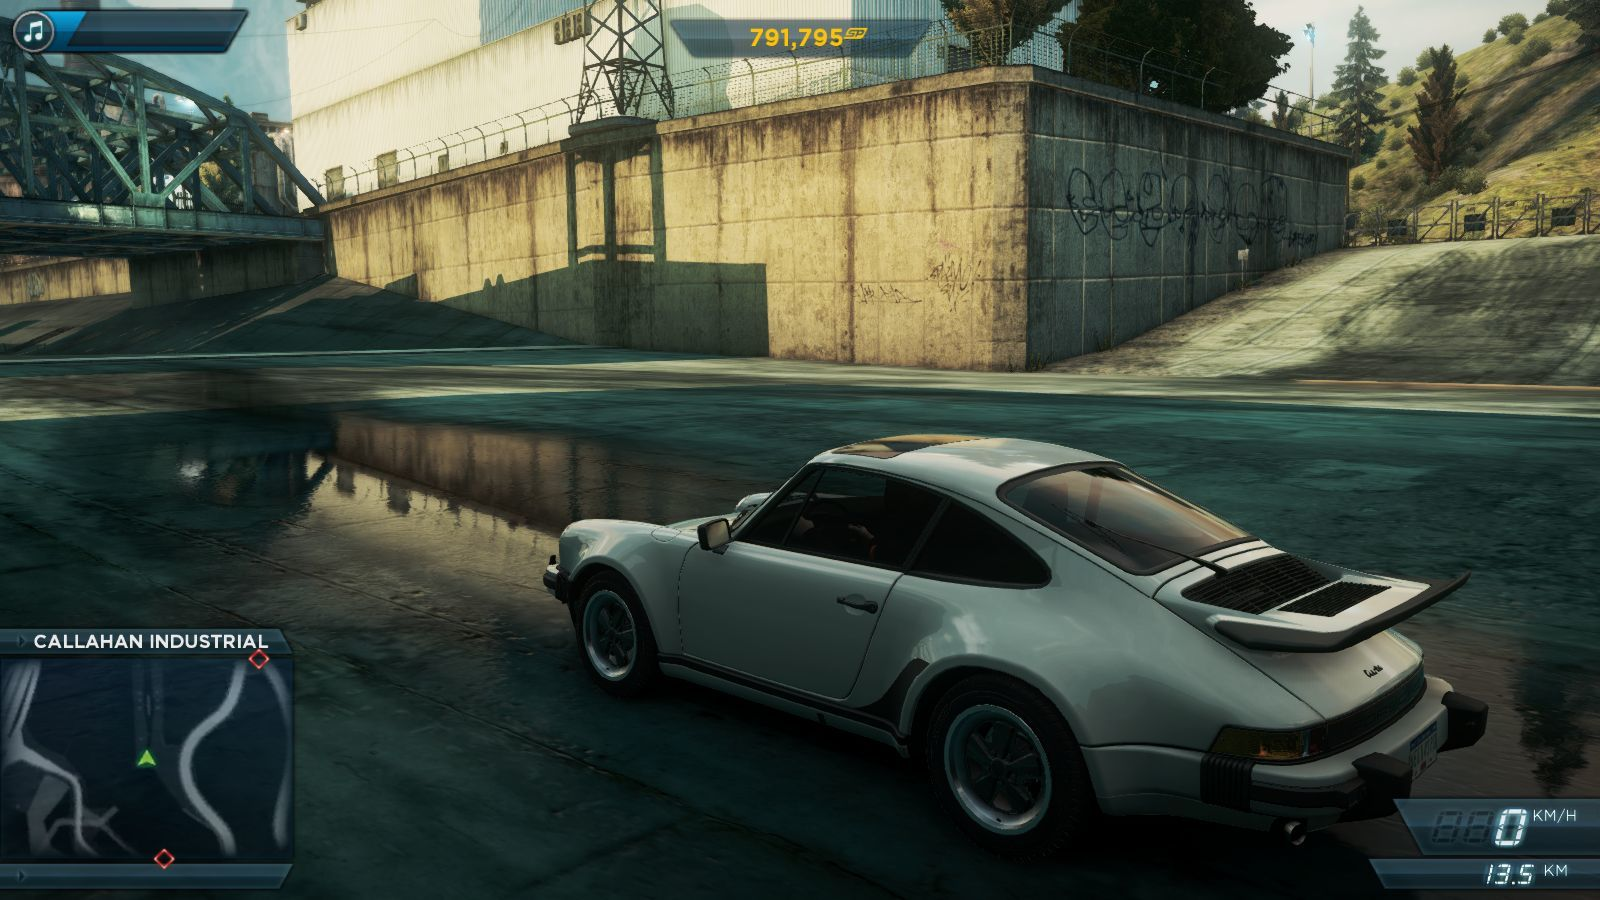 https://www.mobygames.com/images/shots/l/604216-need-for-speed-most-wanted-windows-screenshot-old-porsche.jpg